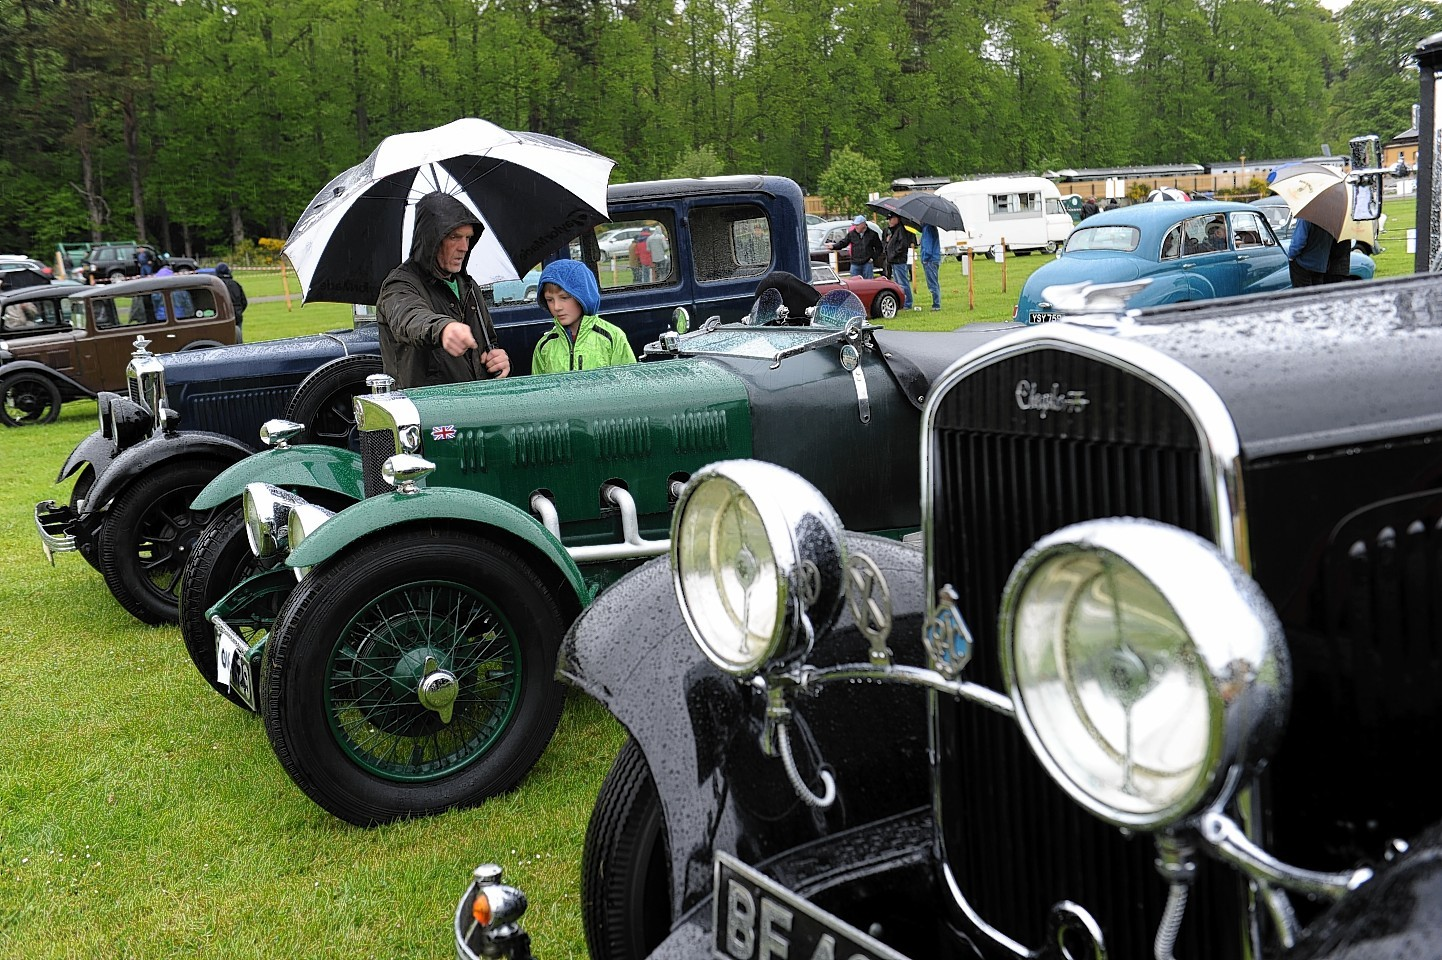 Crathes Vintage Car and Motorcycle Rally 2015